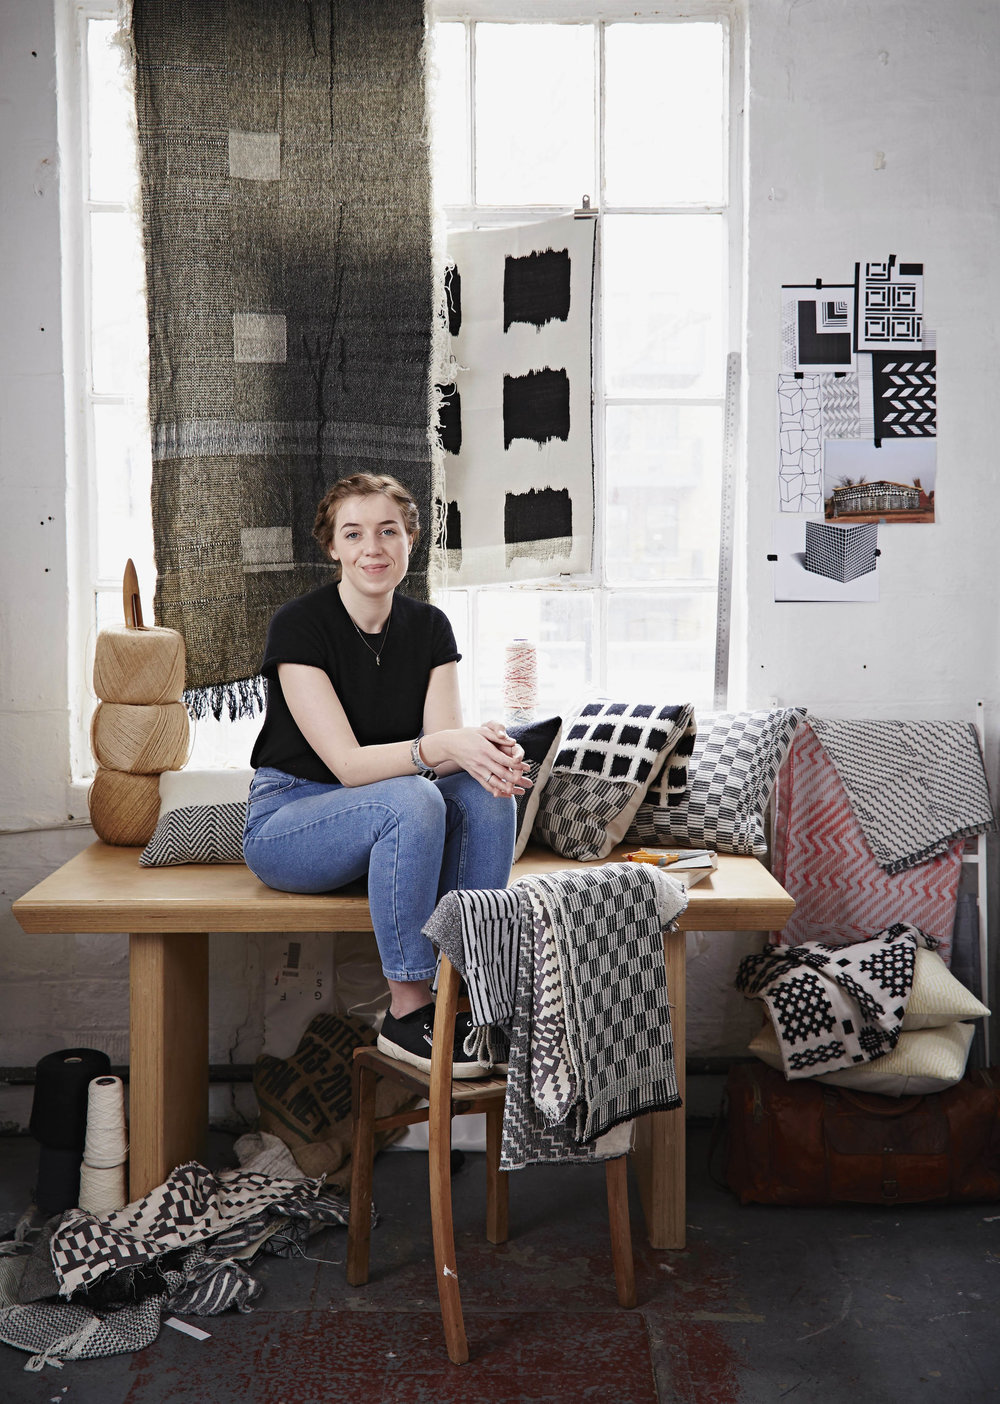 Beatrice in her London Studio, surrounded by woven textiles, including the recent 'Monochrome series', designed and developed by her